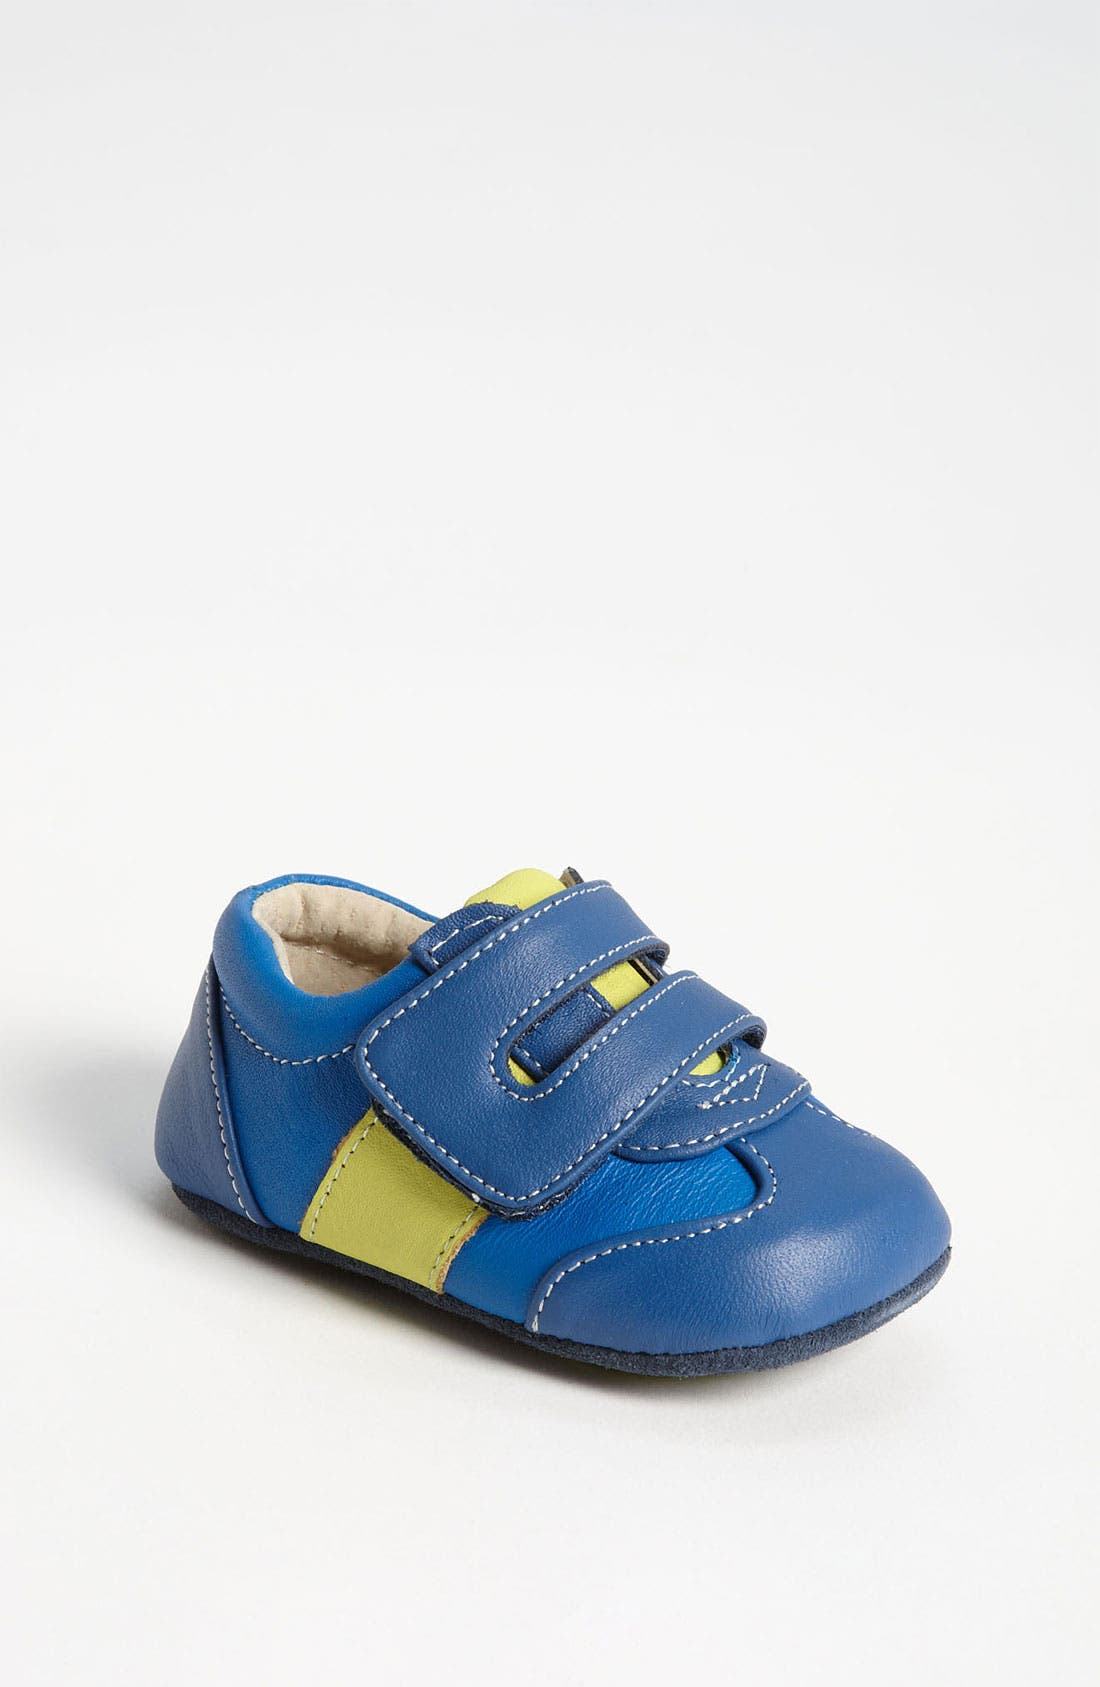 Alternate Image 1 Selected - See Kai Run 'Grant' Sneaker (Baby & Walker)